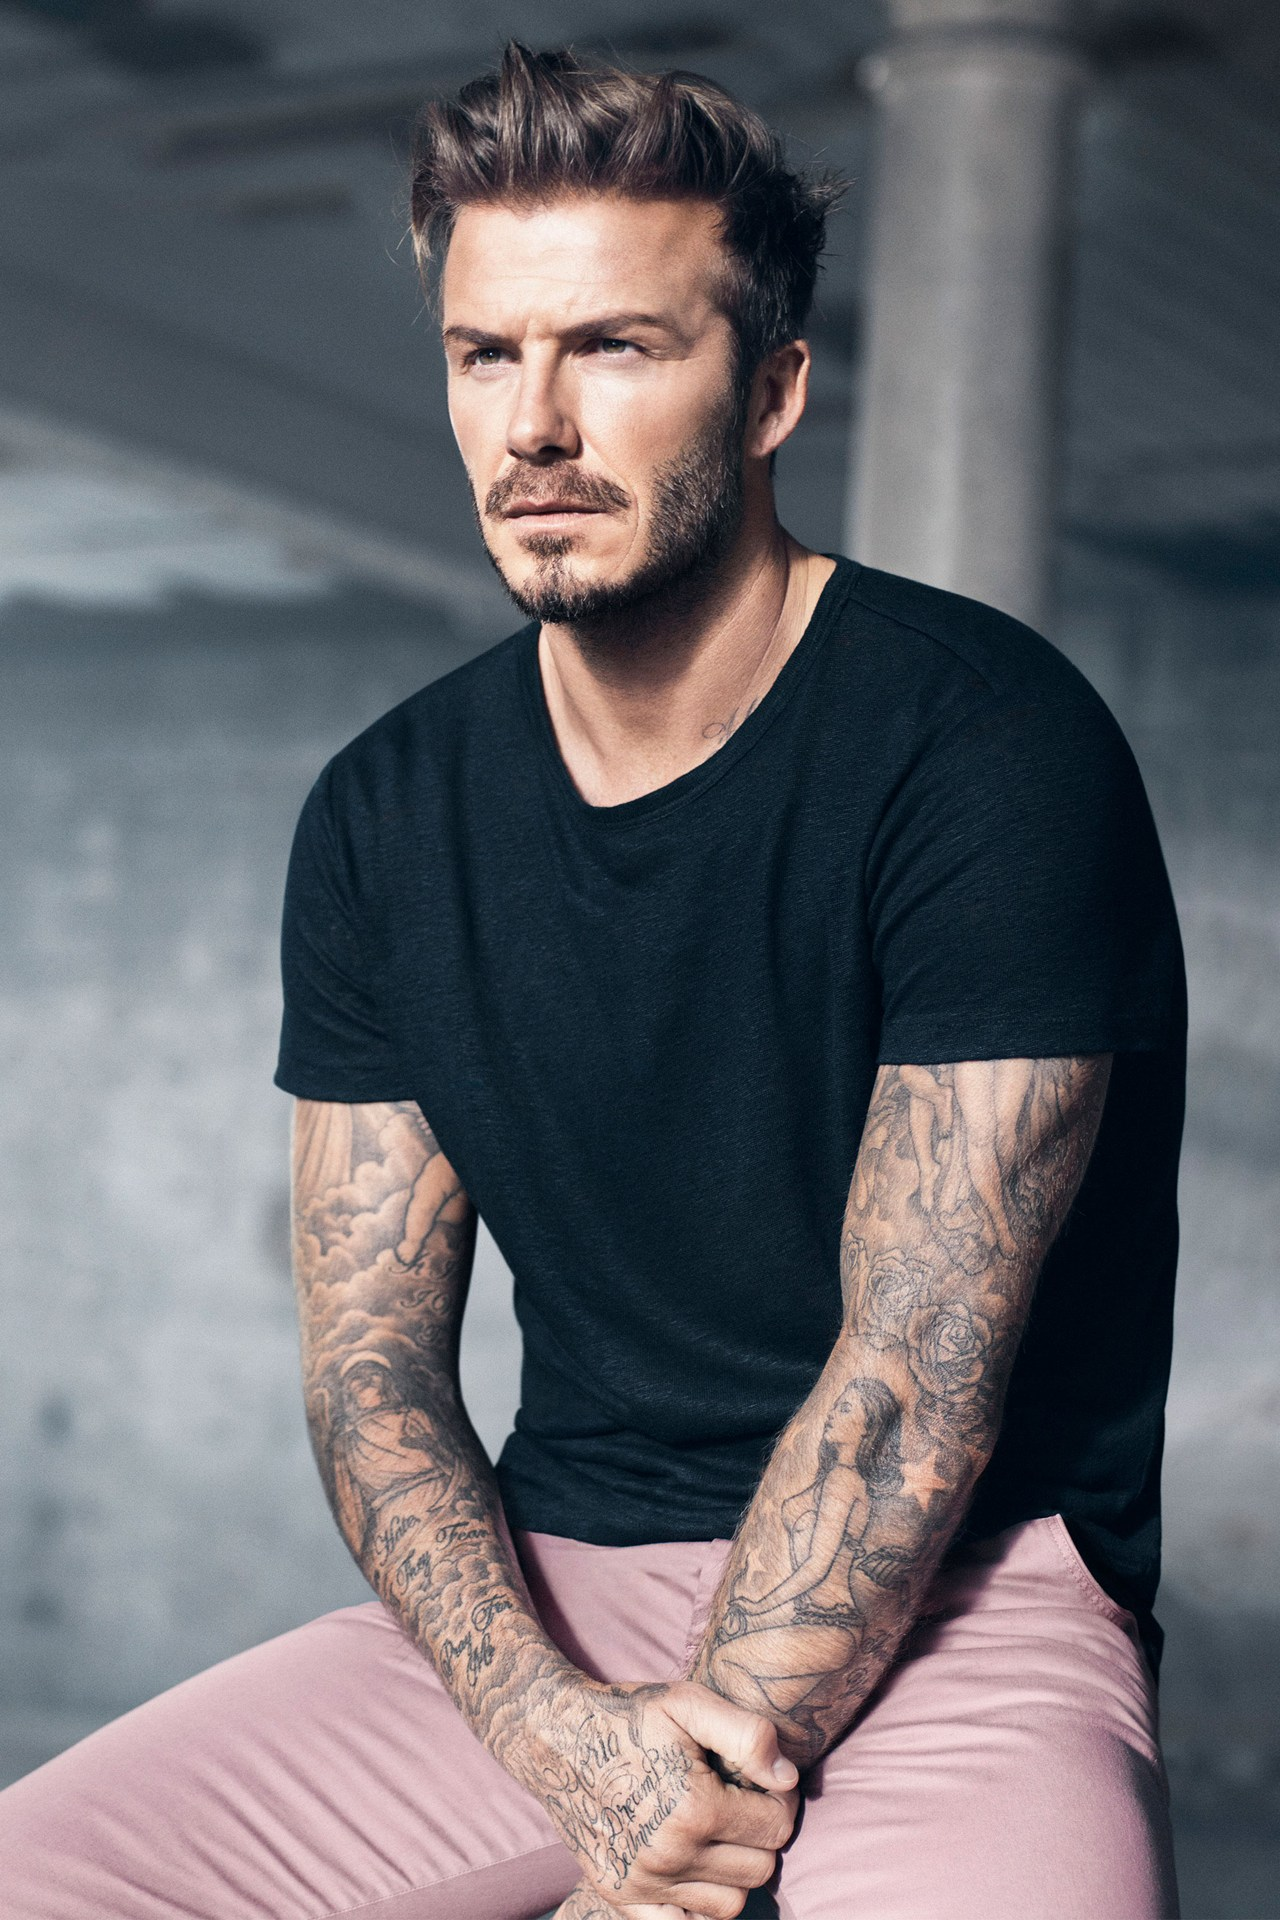 David-Beckham-HM-8-Vogue 20Jan15 pr_b_1280x1920